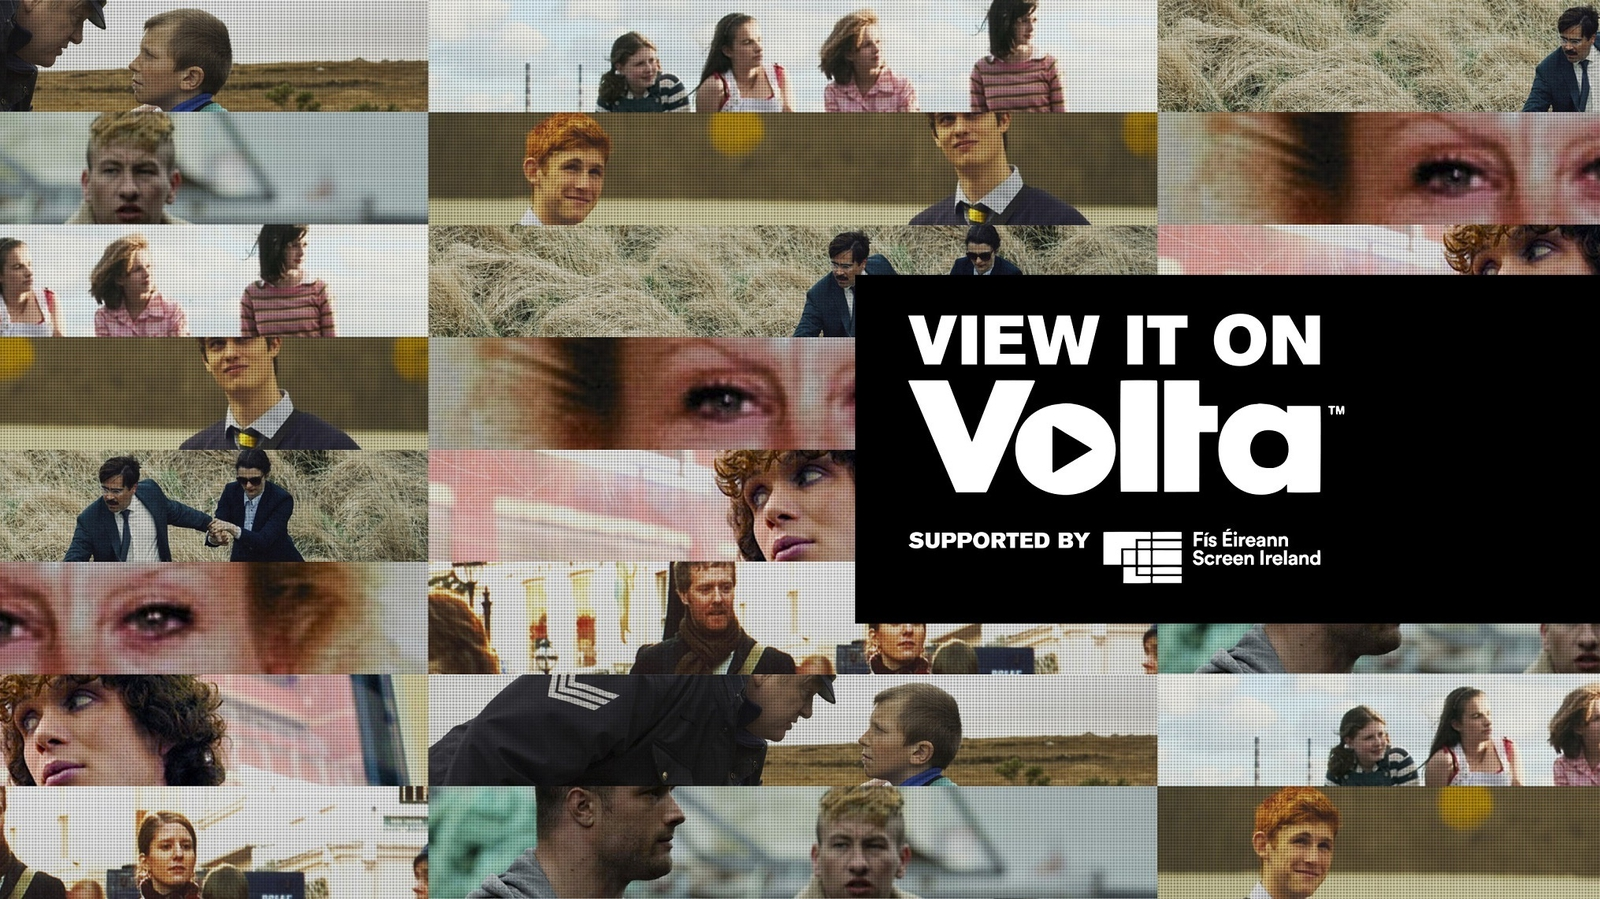 VOD service Volta offering its Irish films for free